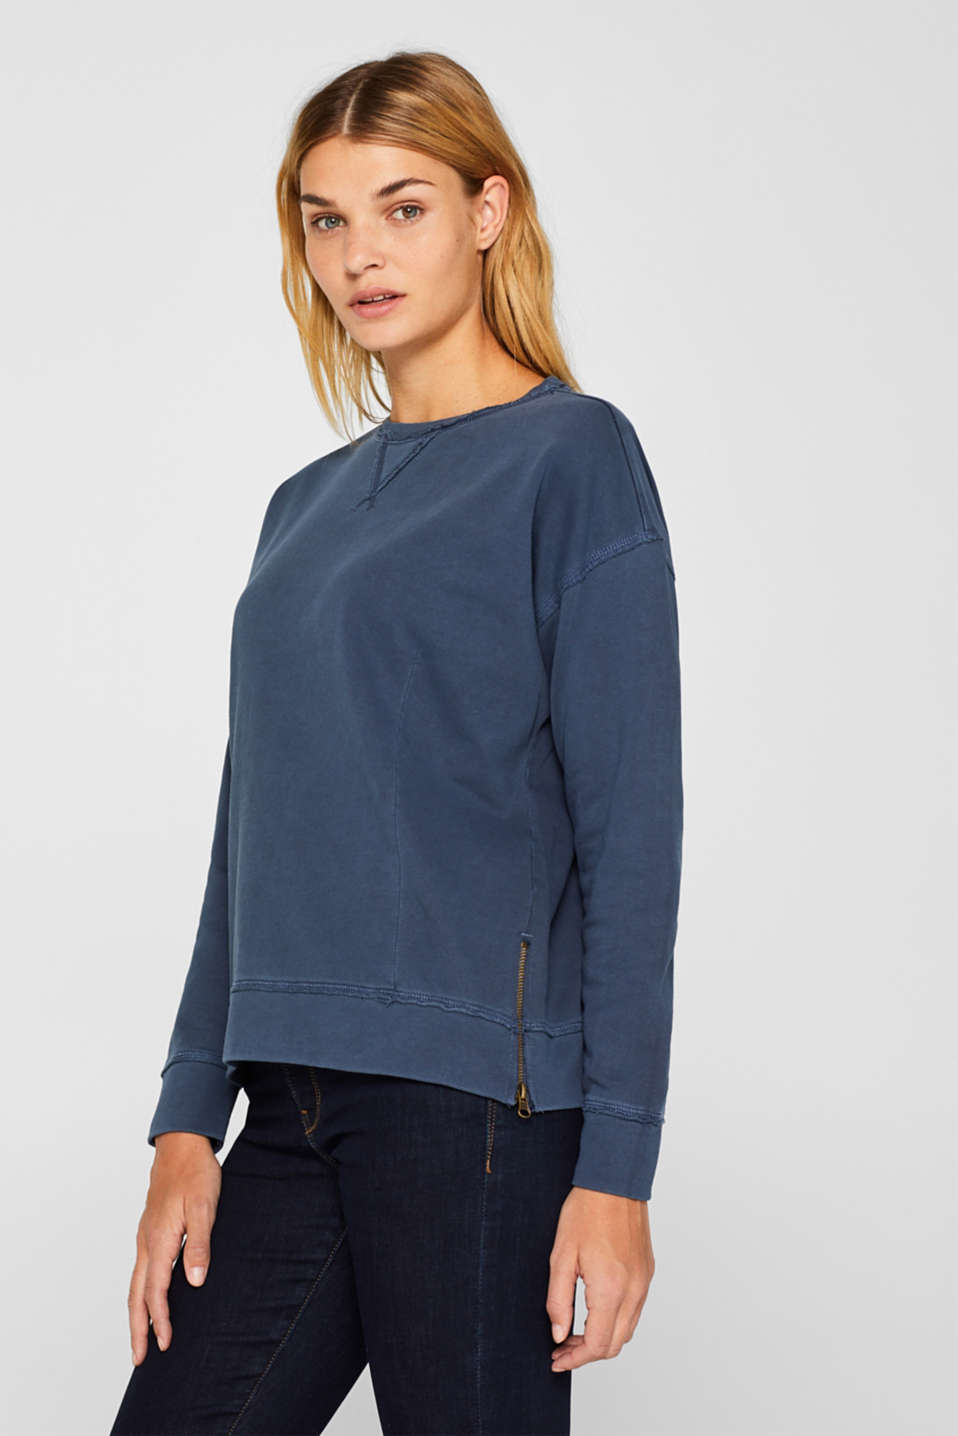 edc - Jumper with zip details, 100% cotton